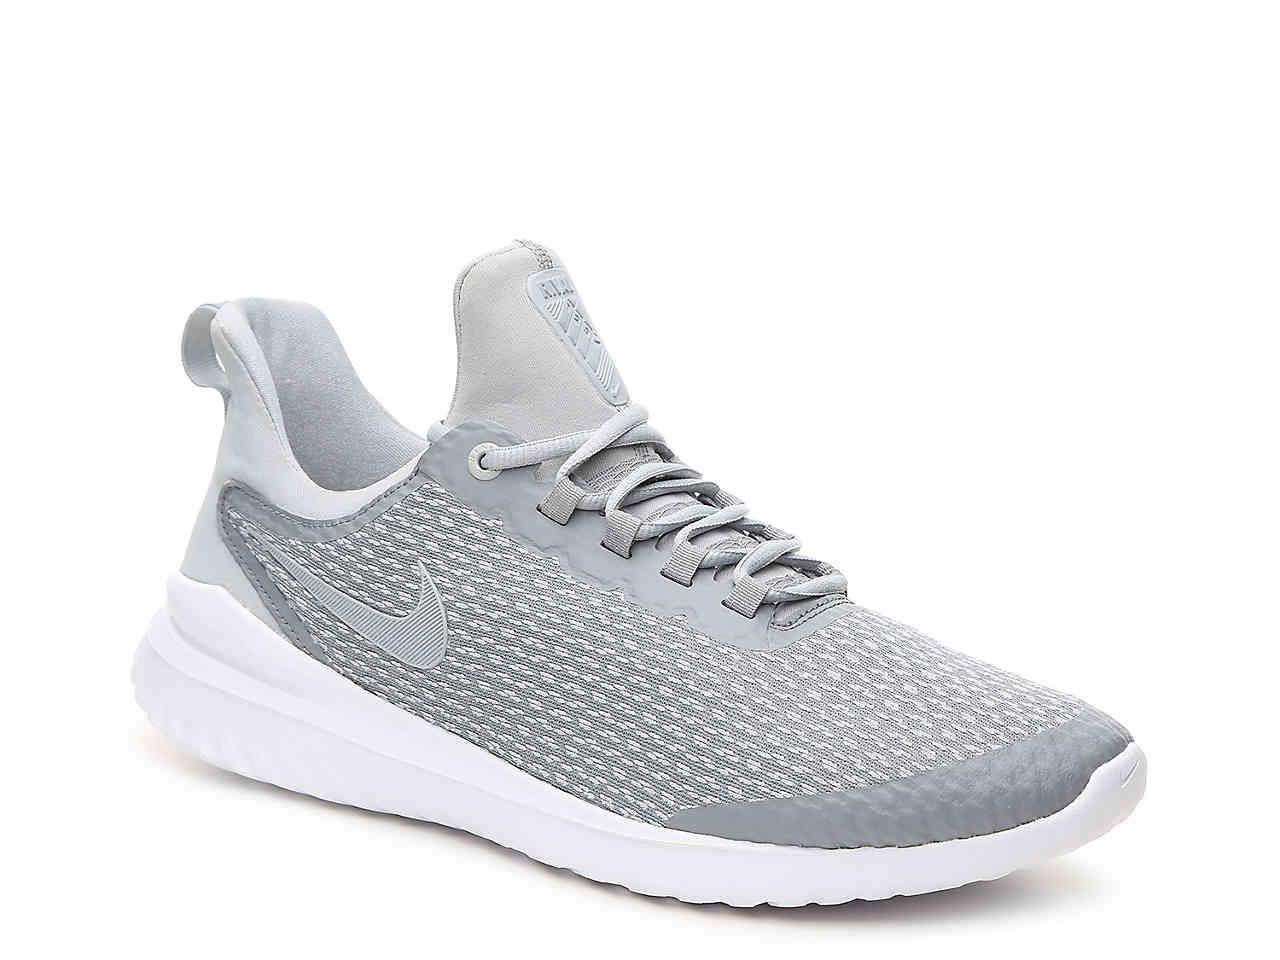 Lyst - Nike Renew Rival Lightweight Running Shoe in Gray for Men 02bed1bd3